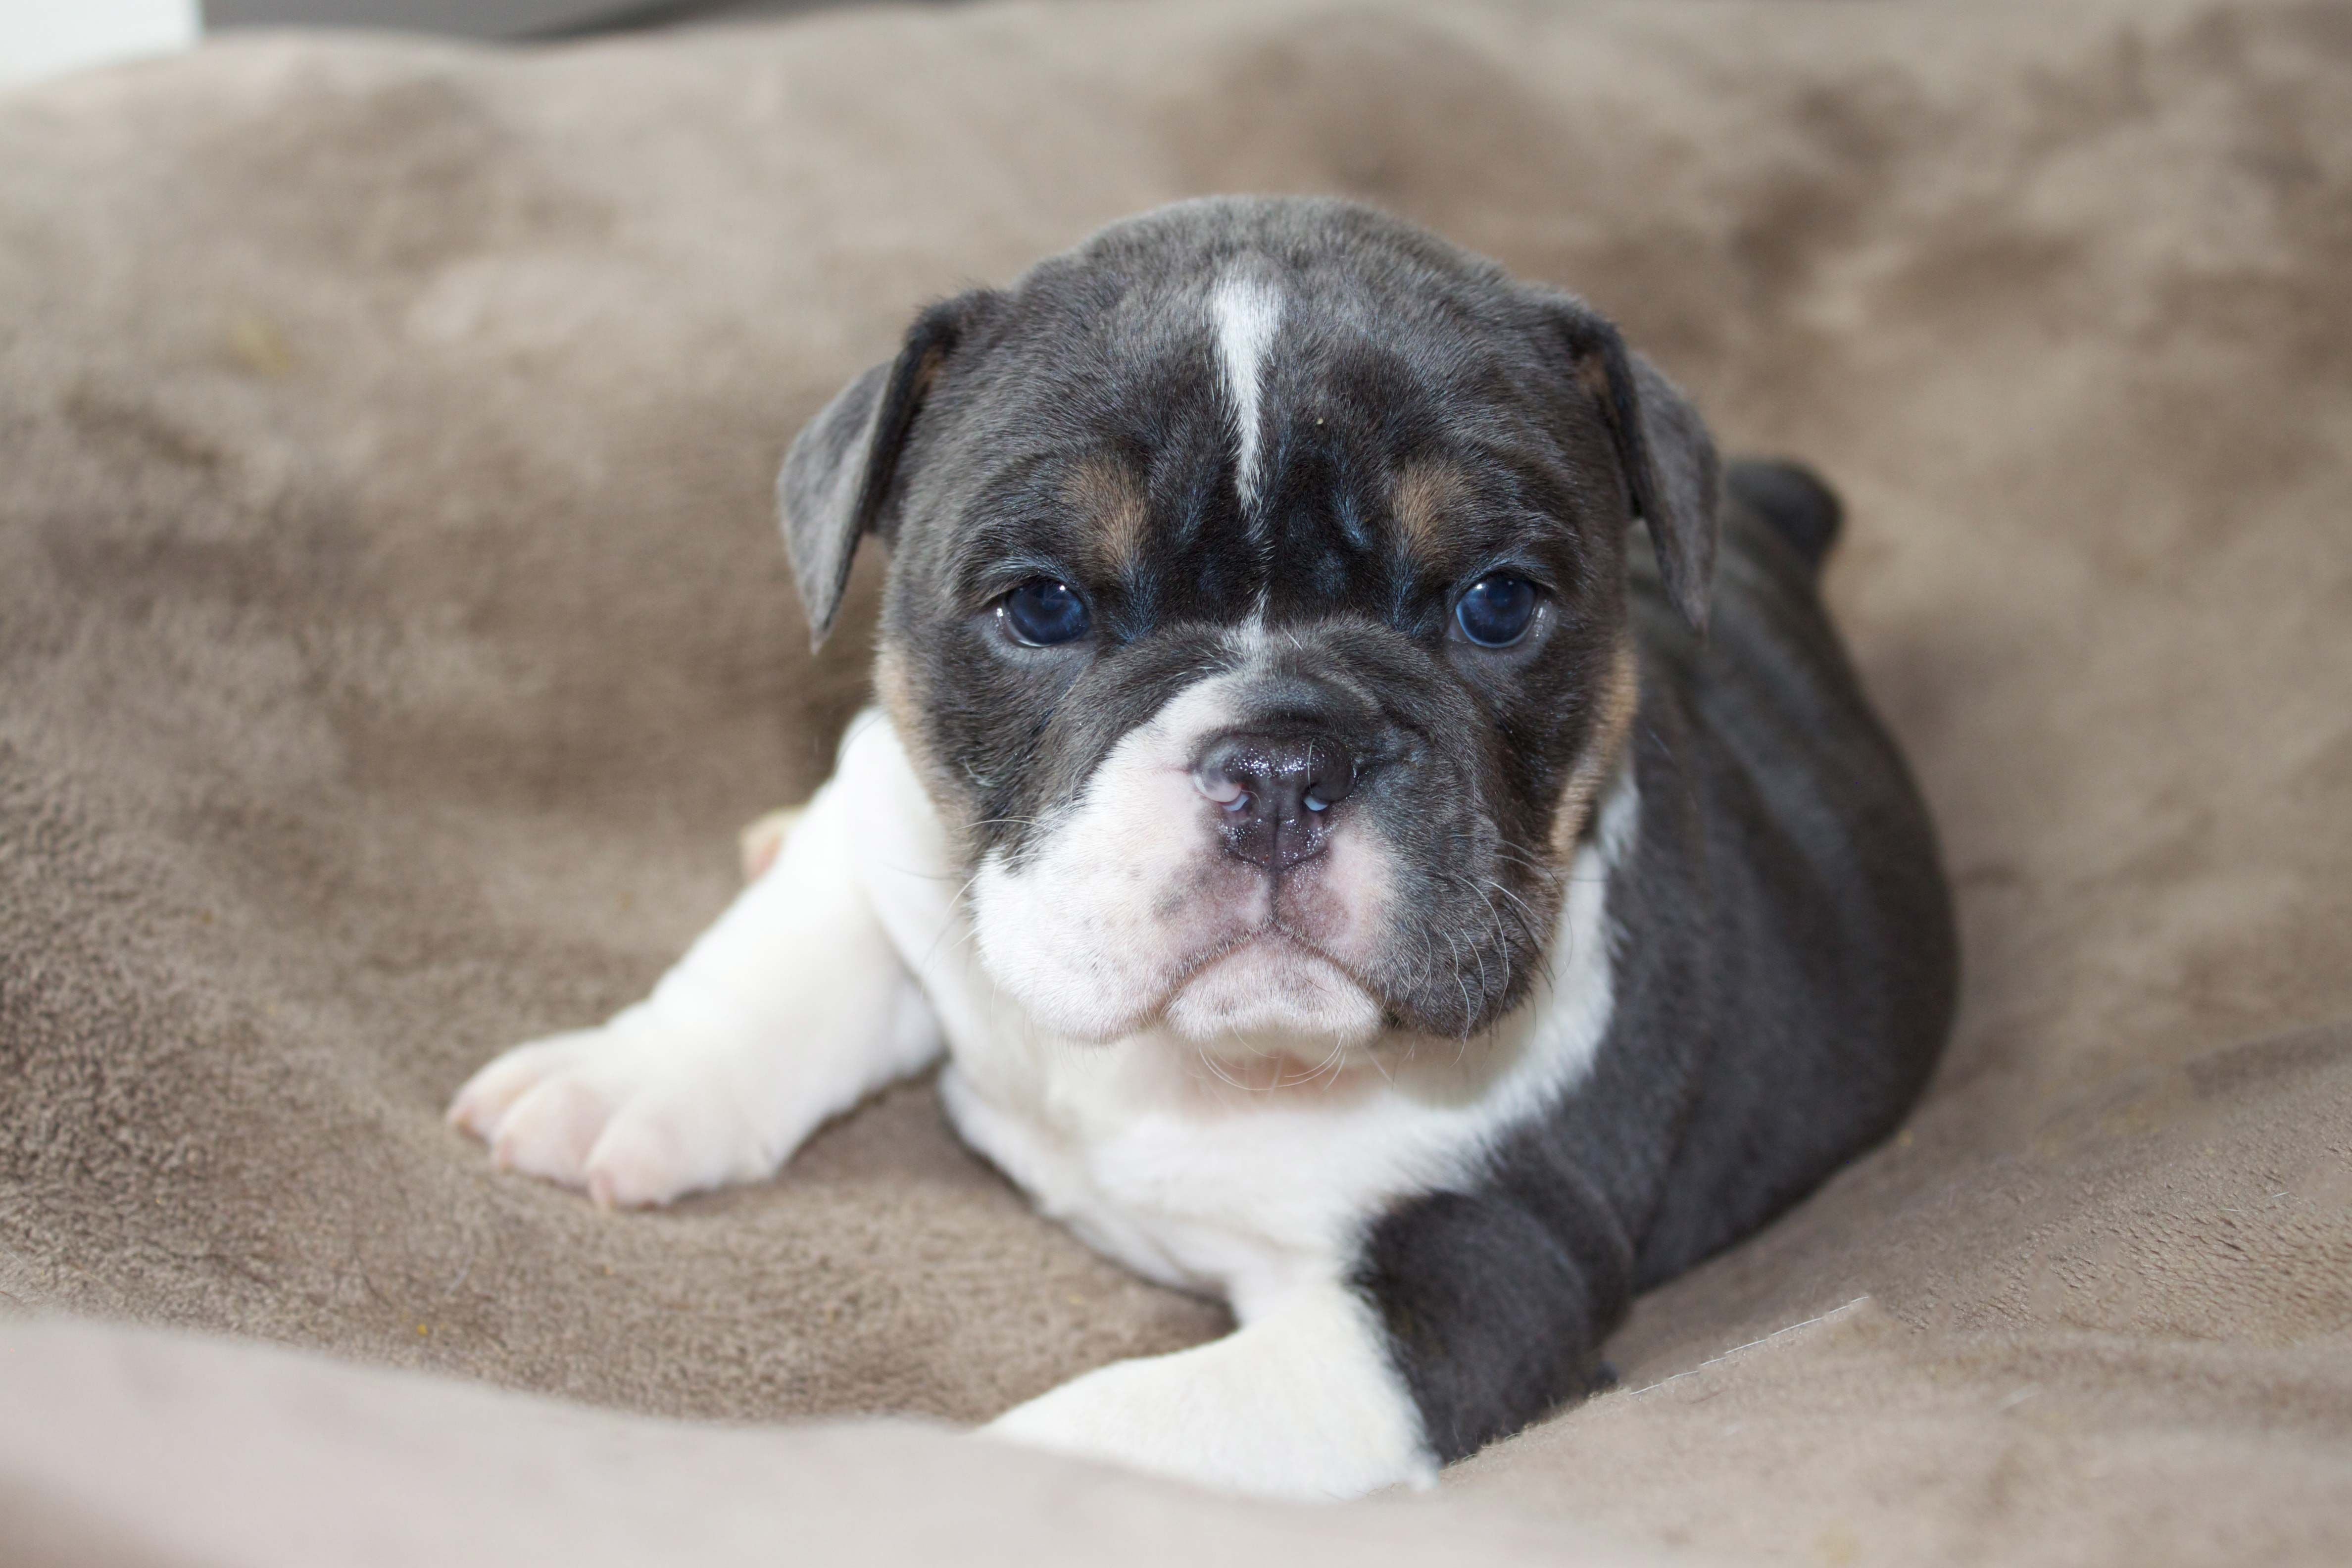 Sophie Our Olde English Bulldog Is 5 Weeks Old Olde English Bullies Oldeenglishbullies Com Bulldog English Bulldog English Bulldog Puppy Puppies For Sale